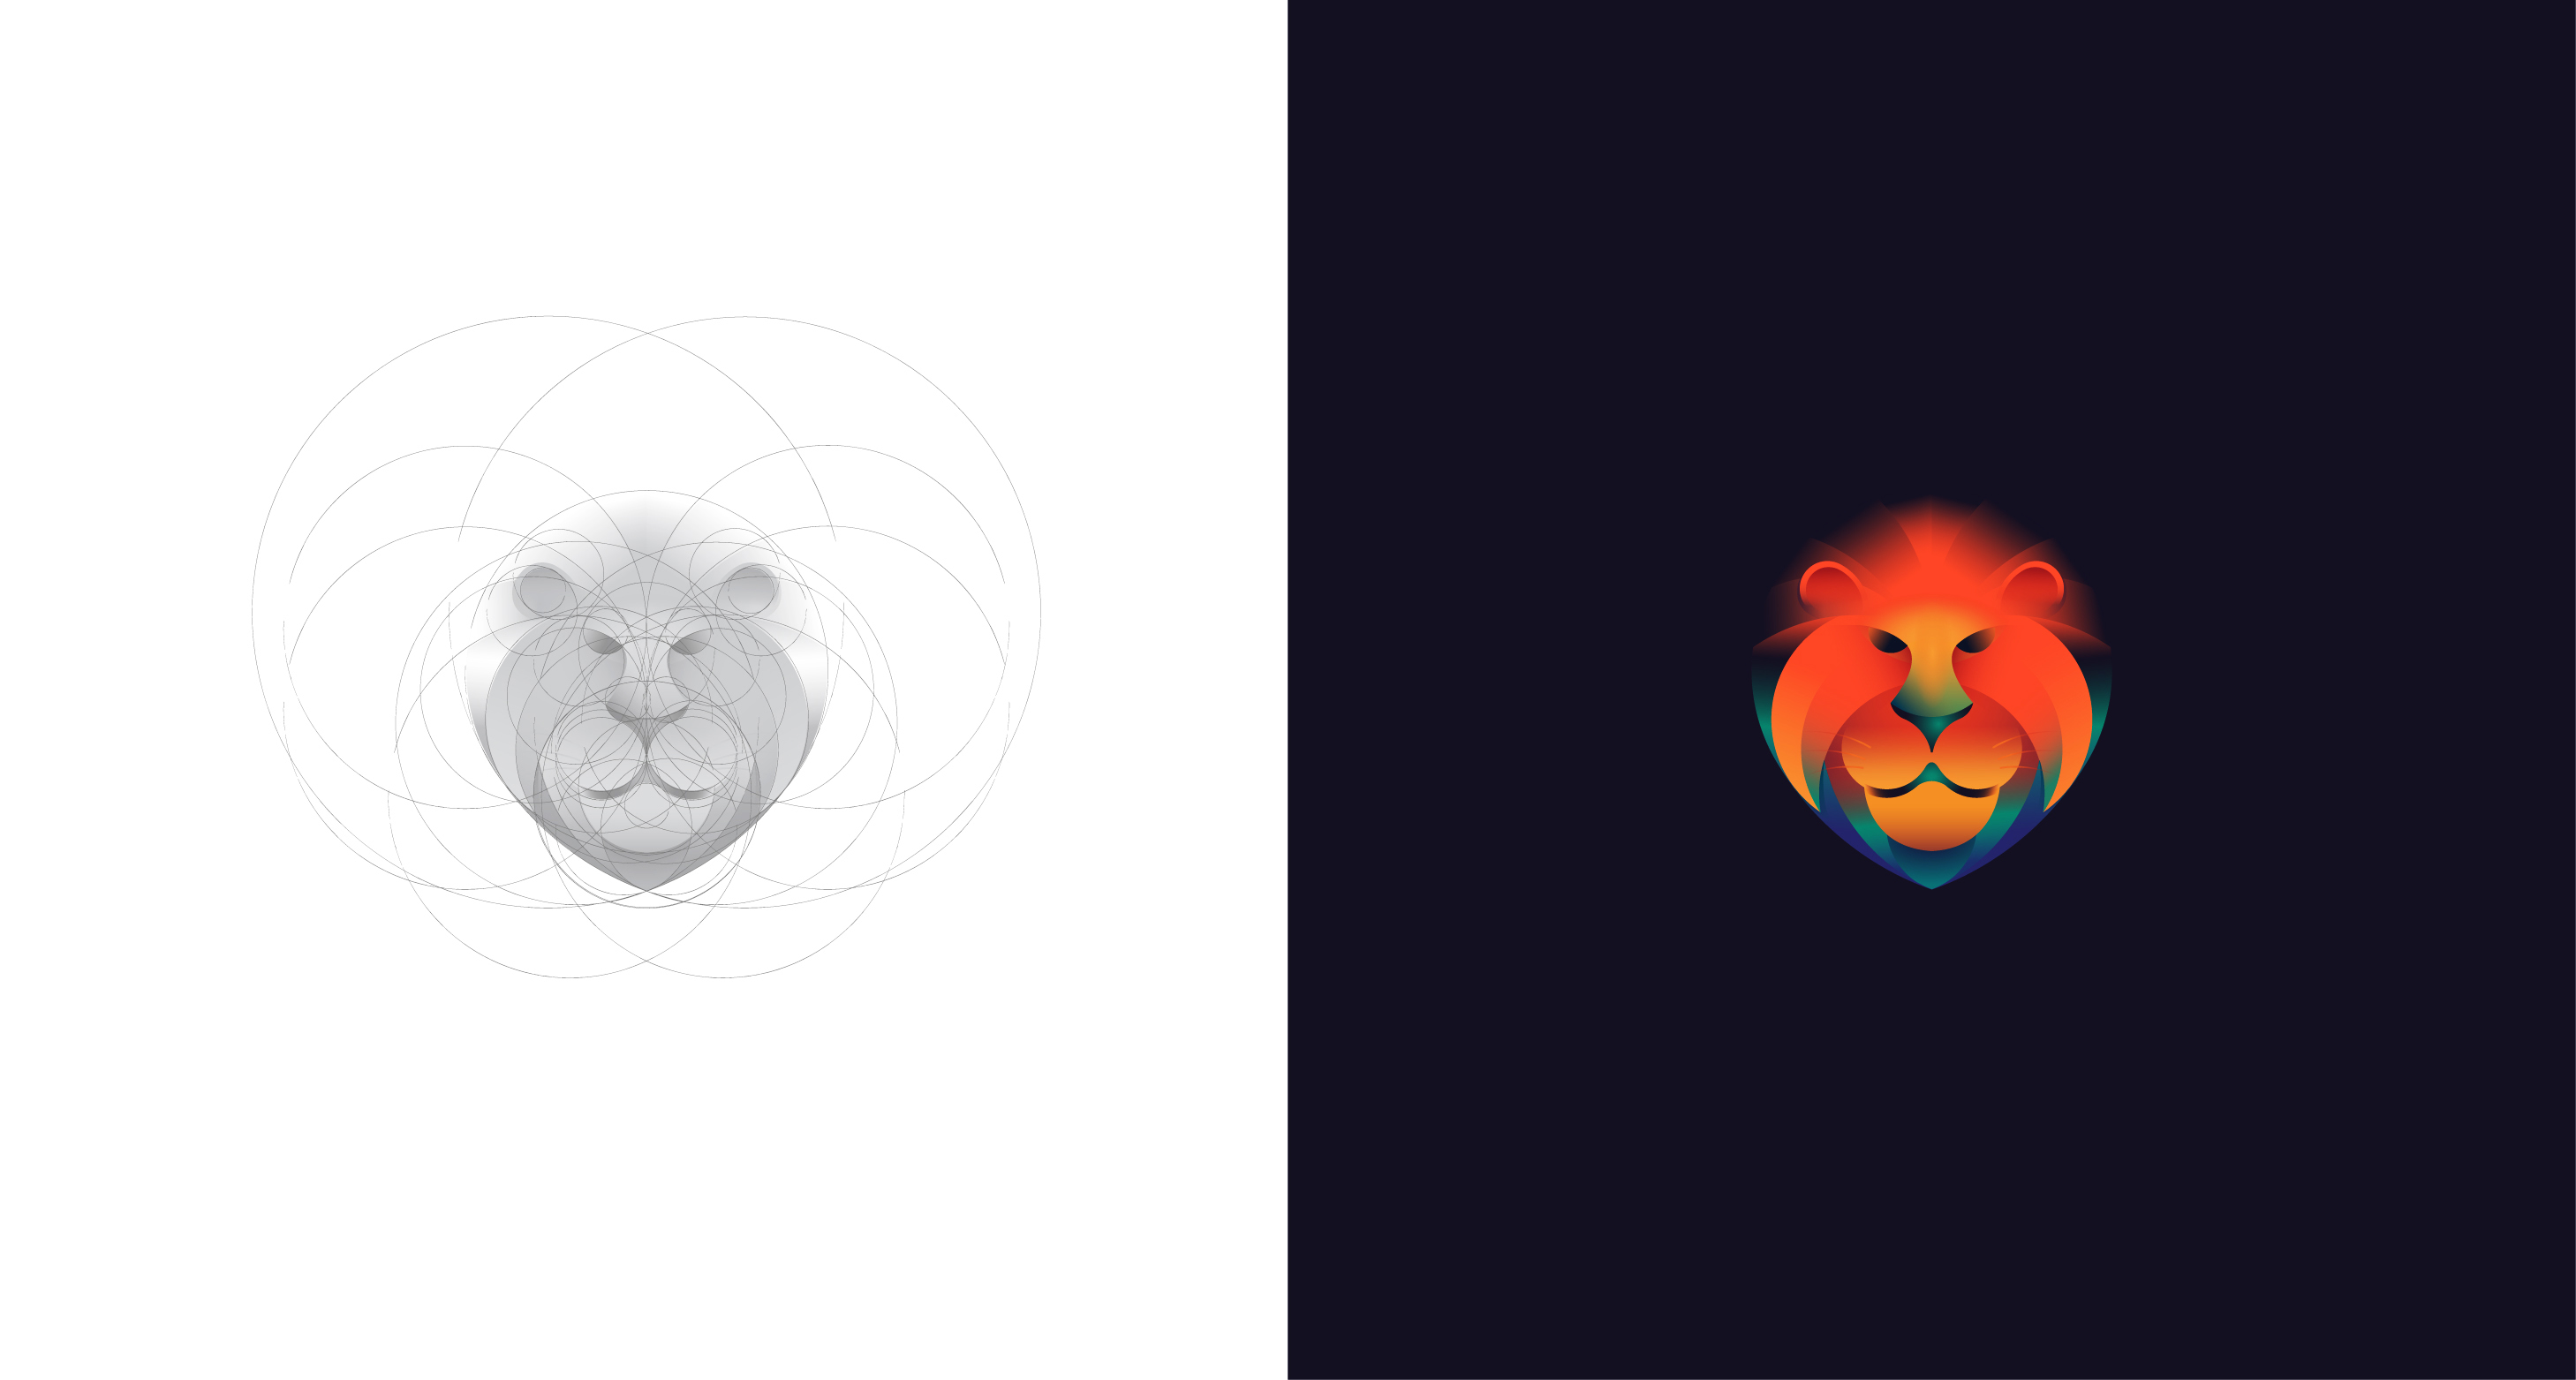 Lion logo with golden ratio grids